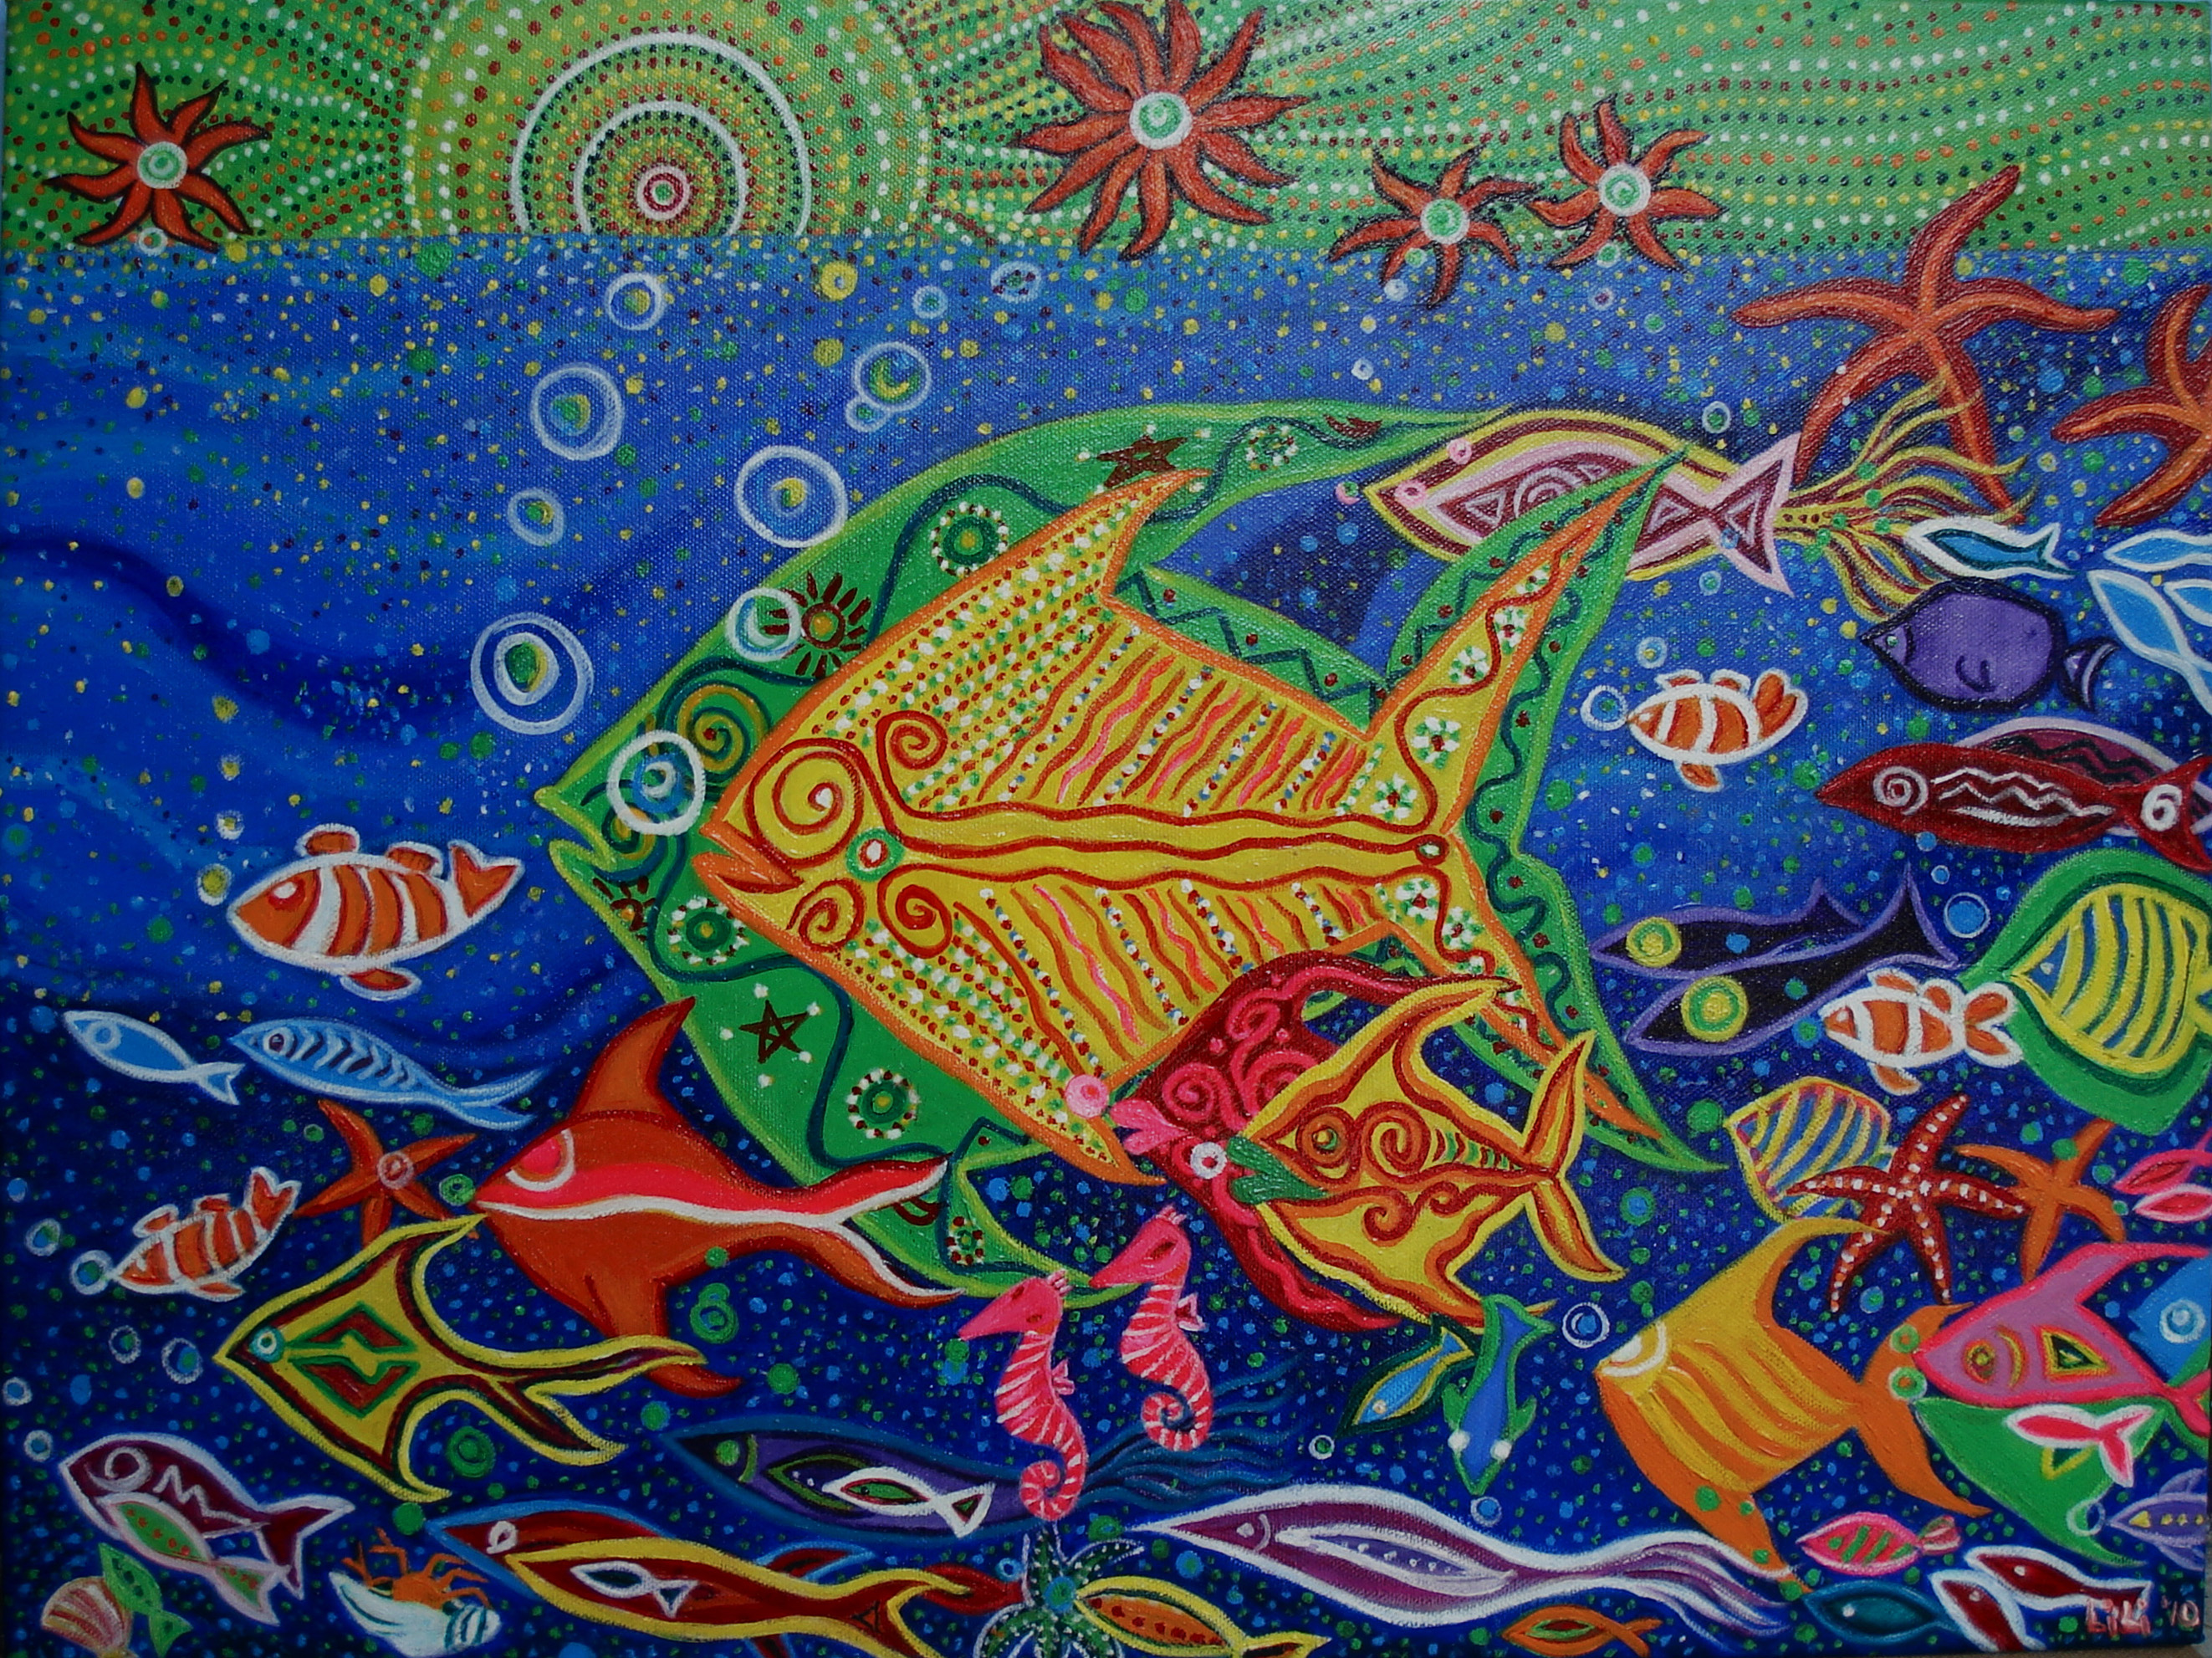 Colourful Fishes Swimming In The Sea - Acrylic Painting Singapore Artist Li Li Tan